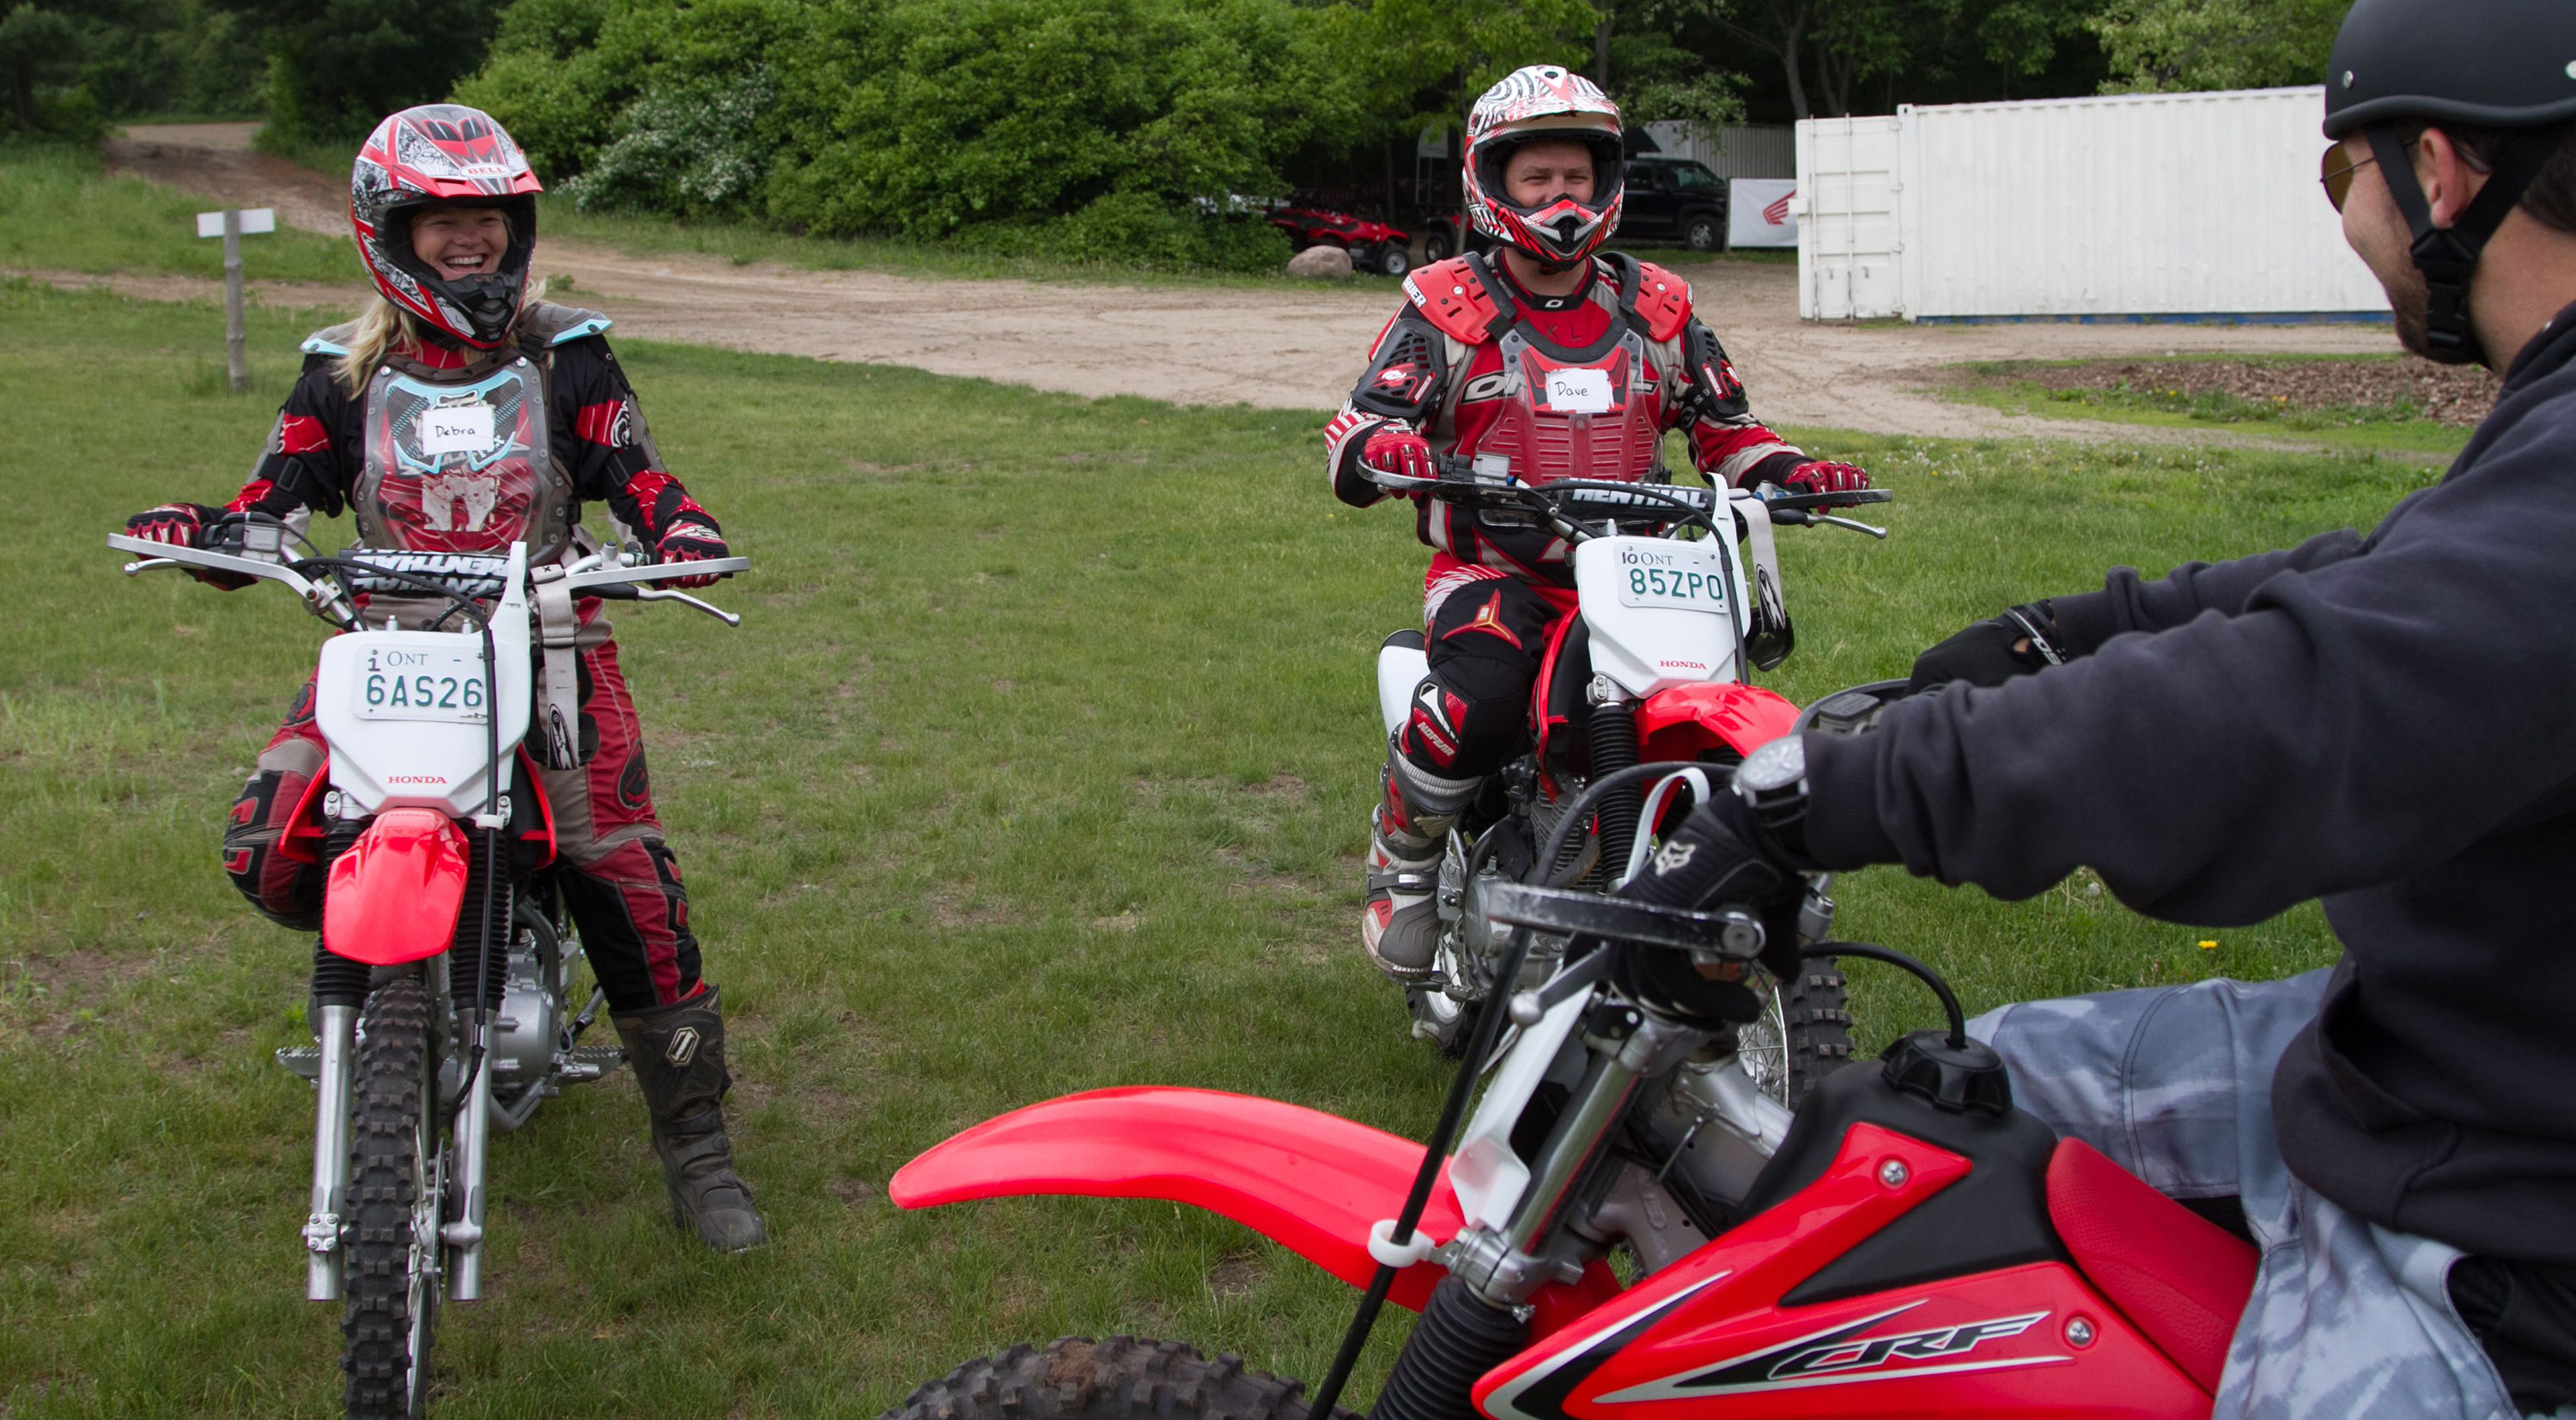 3 people on dirt bikes smiling at each other, getting ready to ride